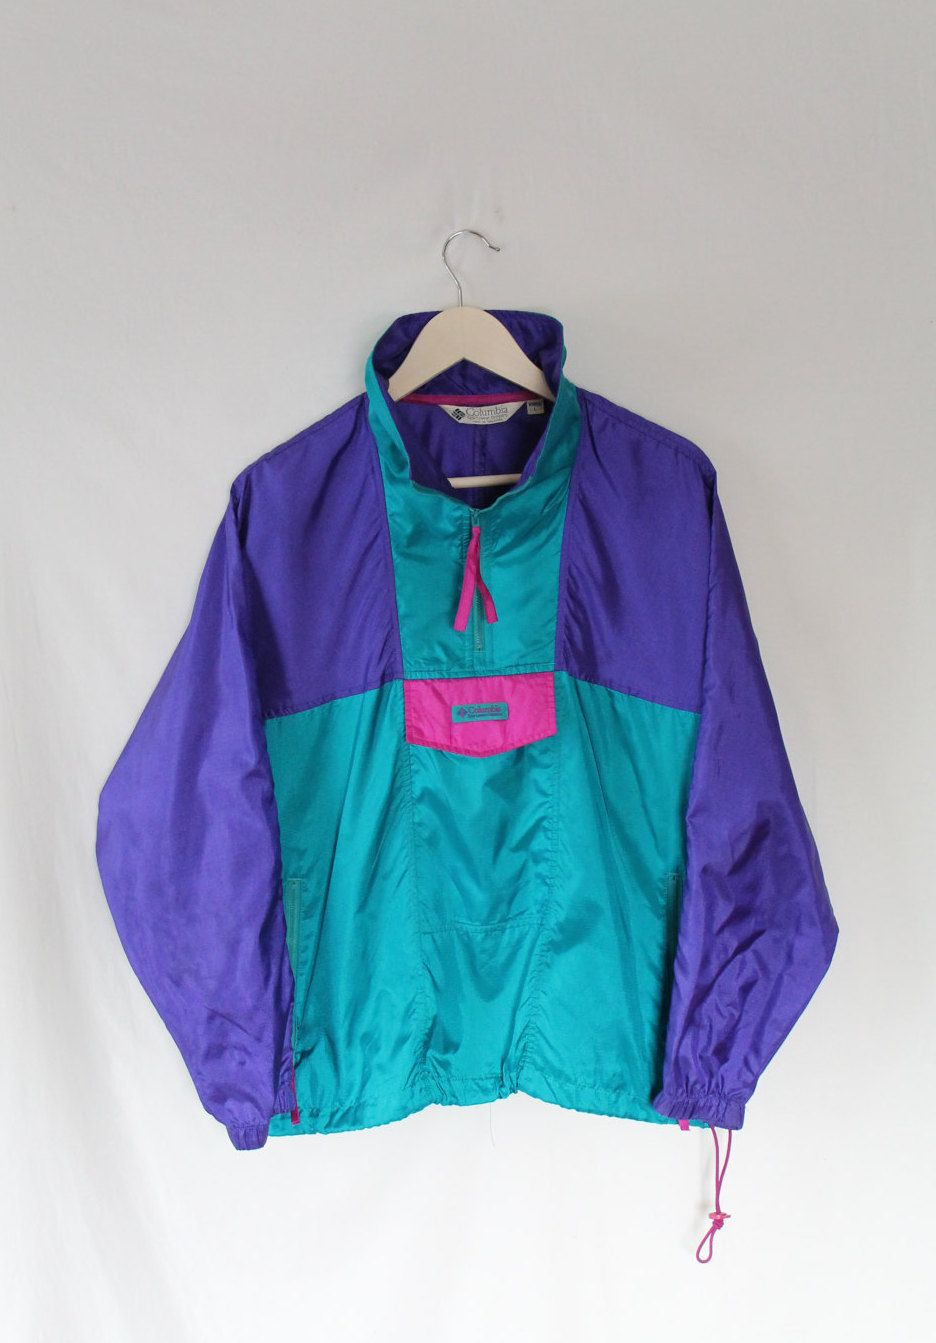 90s COLUMBIA SPORTWEAR Windbreaker // Teal Pink Purple // Chillwave Vaporwave Aesthetic Gear ...